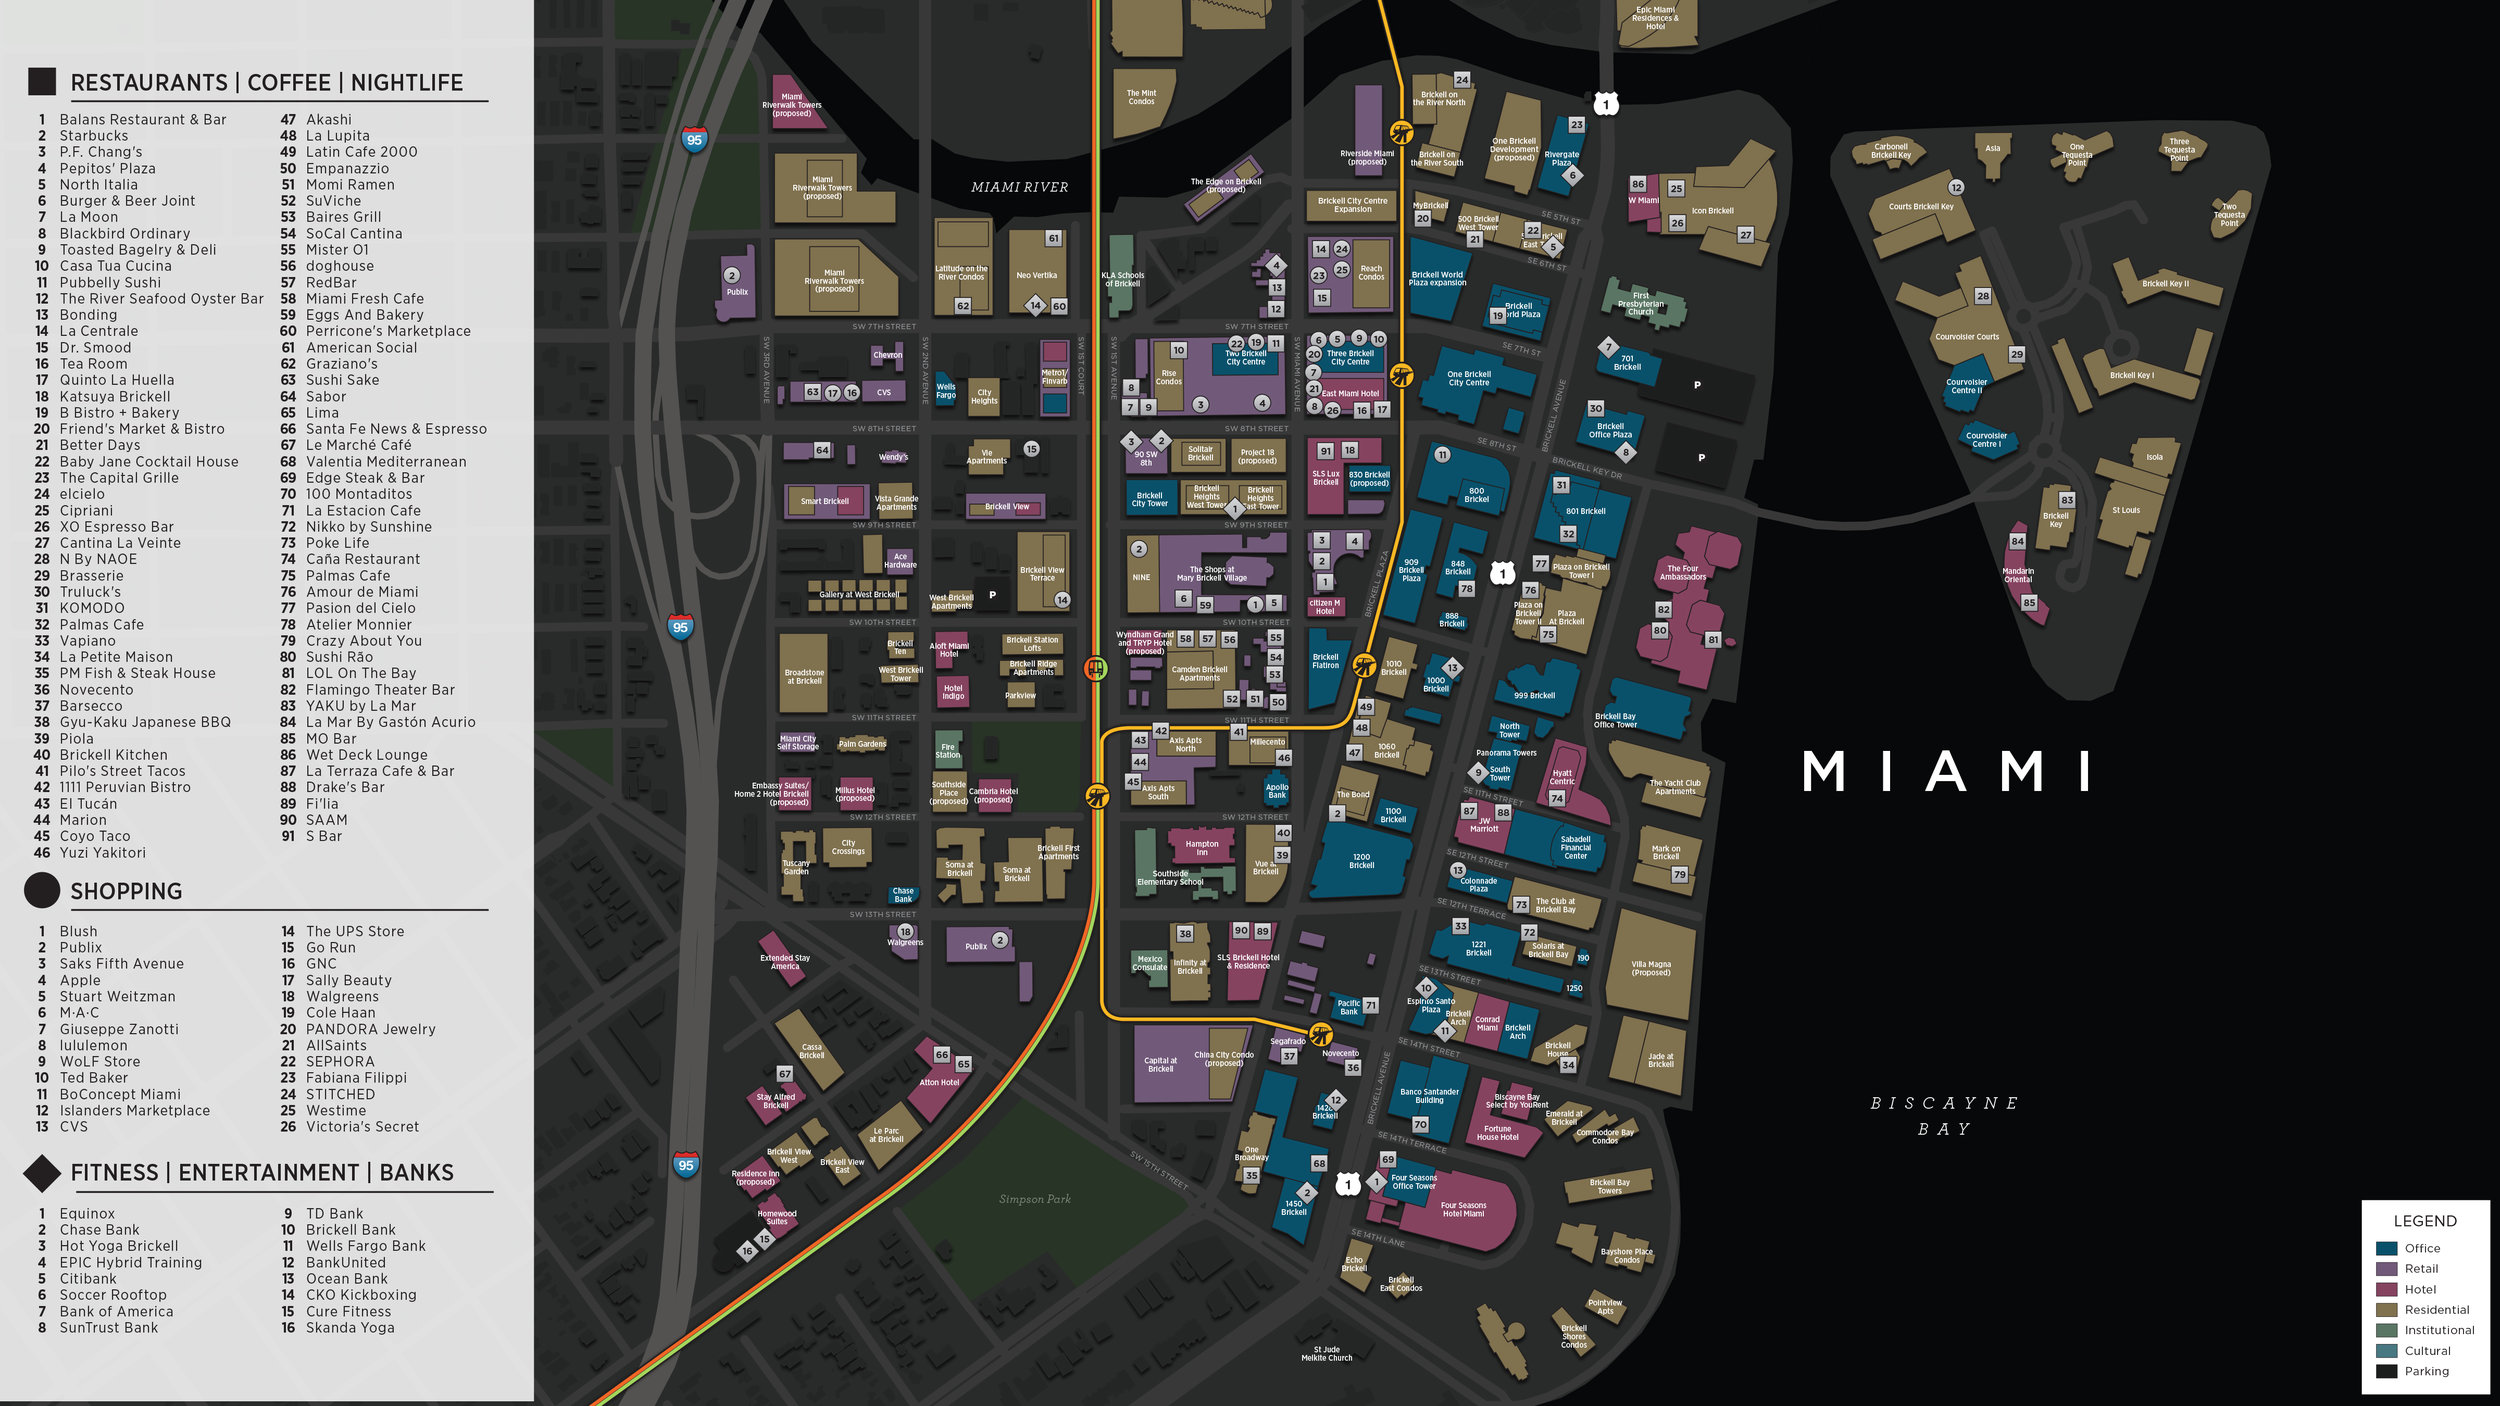 FL Miami Amenities Map.jpg